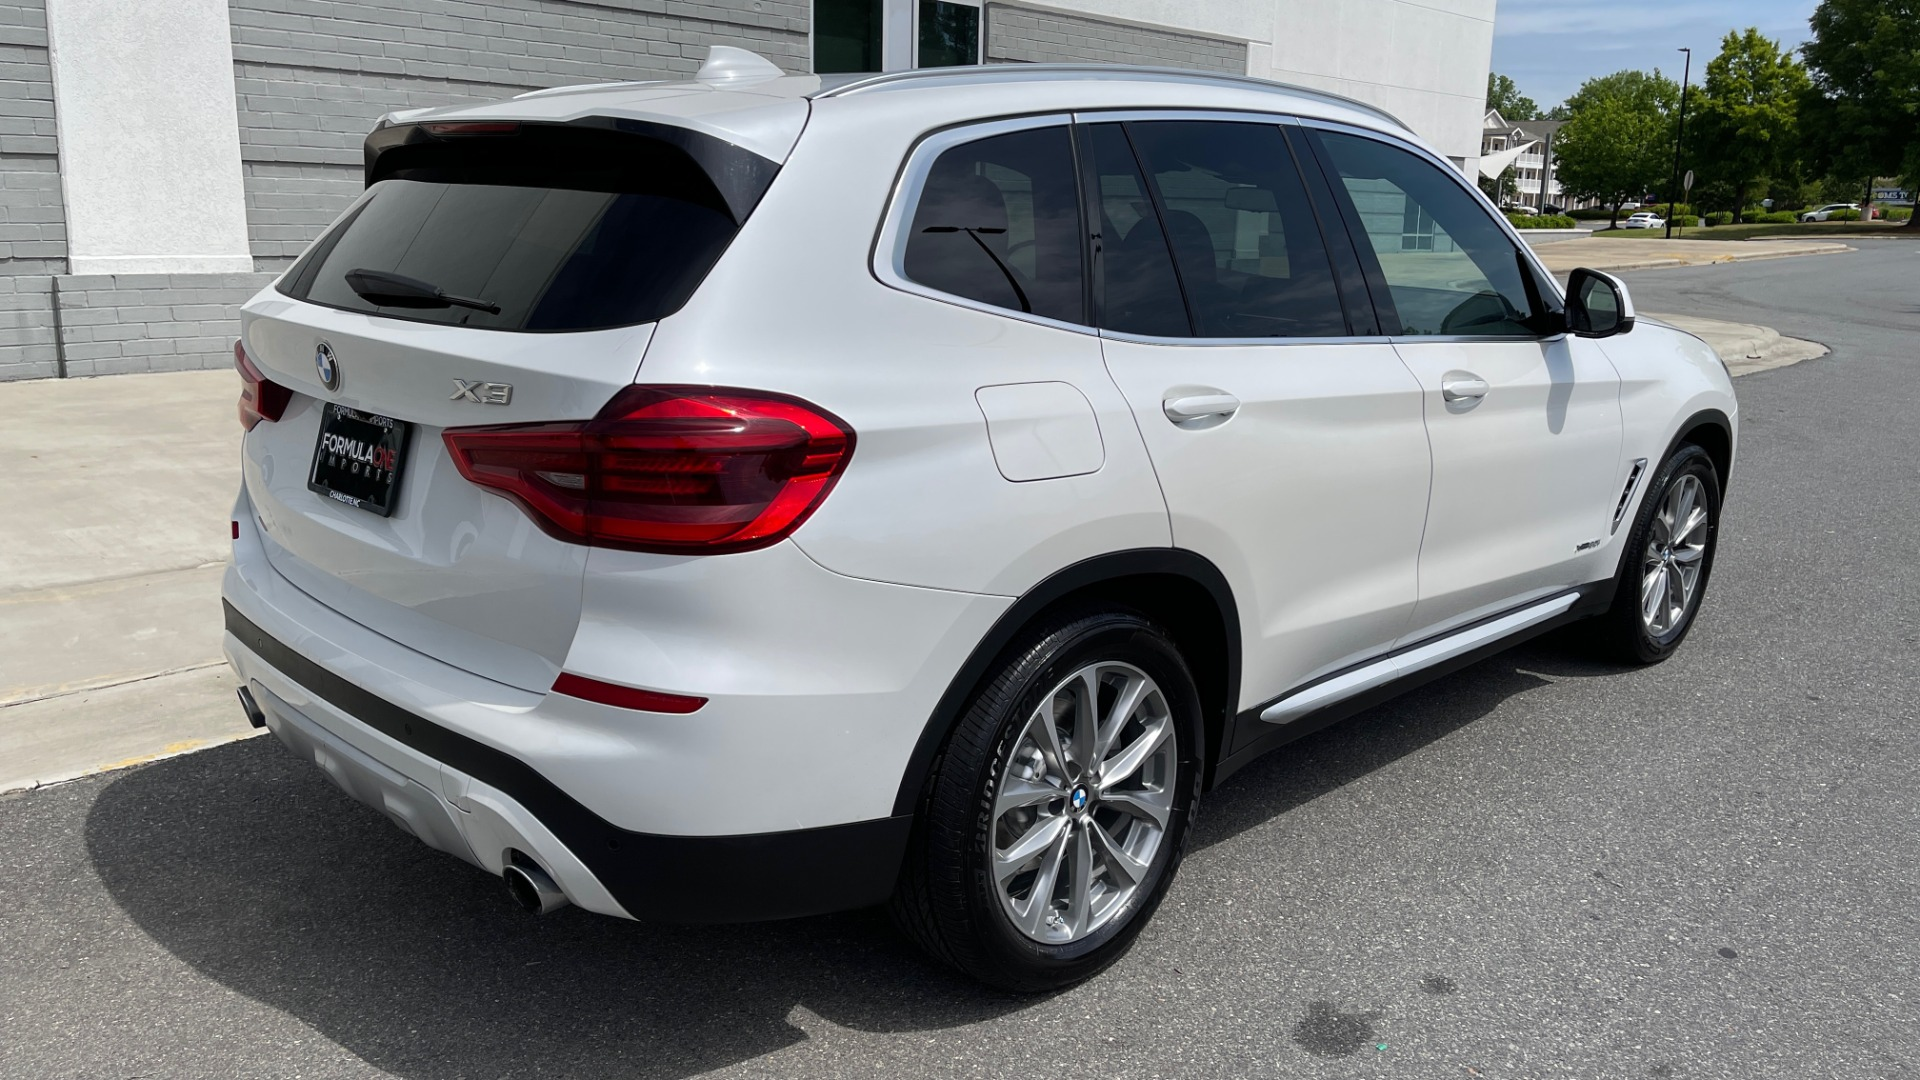 Used 2018 BMW X3 XDRIVE30I PREMIUM / NAV / DRVR ASST / CONV PKG / SUNROOF / REARVIEW for sale $32,695 at Formula Imports in Charlotte NC 28227 2